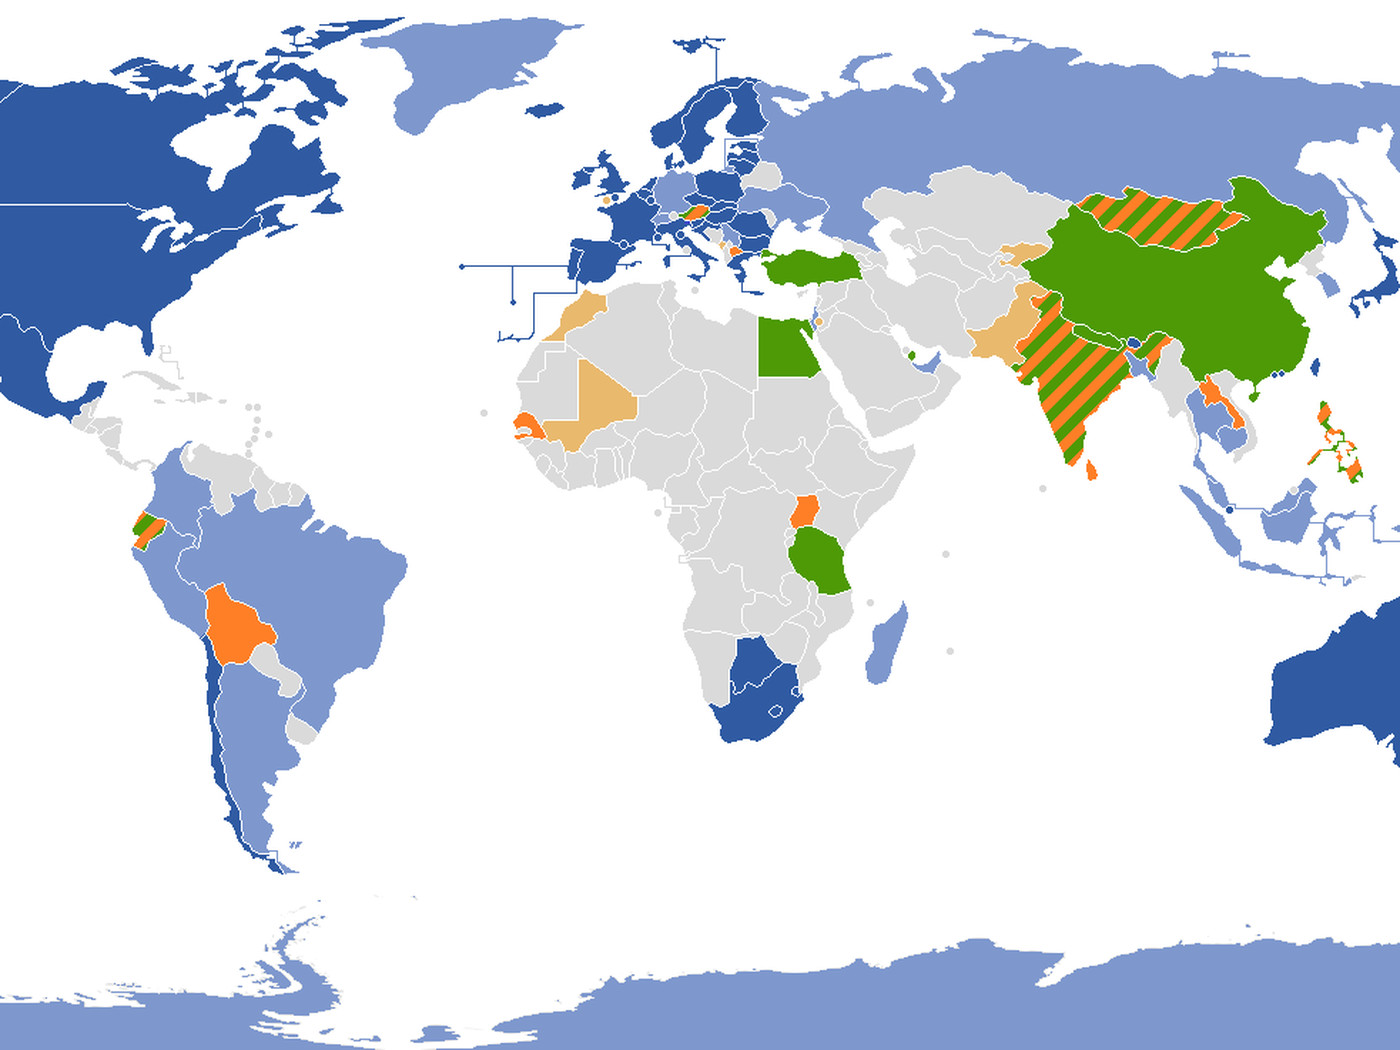 This map shows all the countries Google Maps' Street View ... Google Worldmap on hp world map, google earth, gaming world map, google maps street view, coca-cola world map, agile world map, palm world map, apps world map, web mapping, security world map, satellite map images with missing or unclear data, google mars, blank world map, google voice, google moon, yahoo! maps, google translate, cities in greenland on a map, google goggles, bing world map, microsoft world map, geocoin world map, google latitude, barnes & noble world map, google street view, route planning software, att world map, google map maker, pepsi world map, national geographic world map, google chrome, google search, bing maps, google docs, google sky,